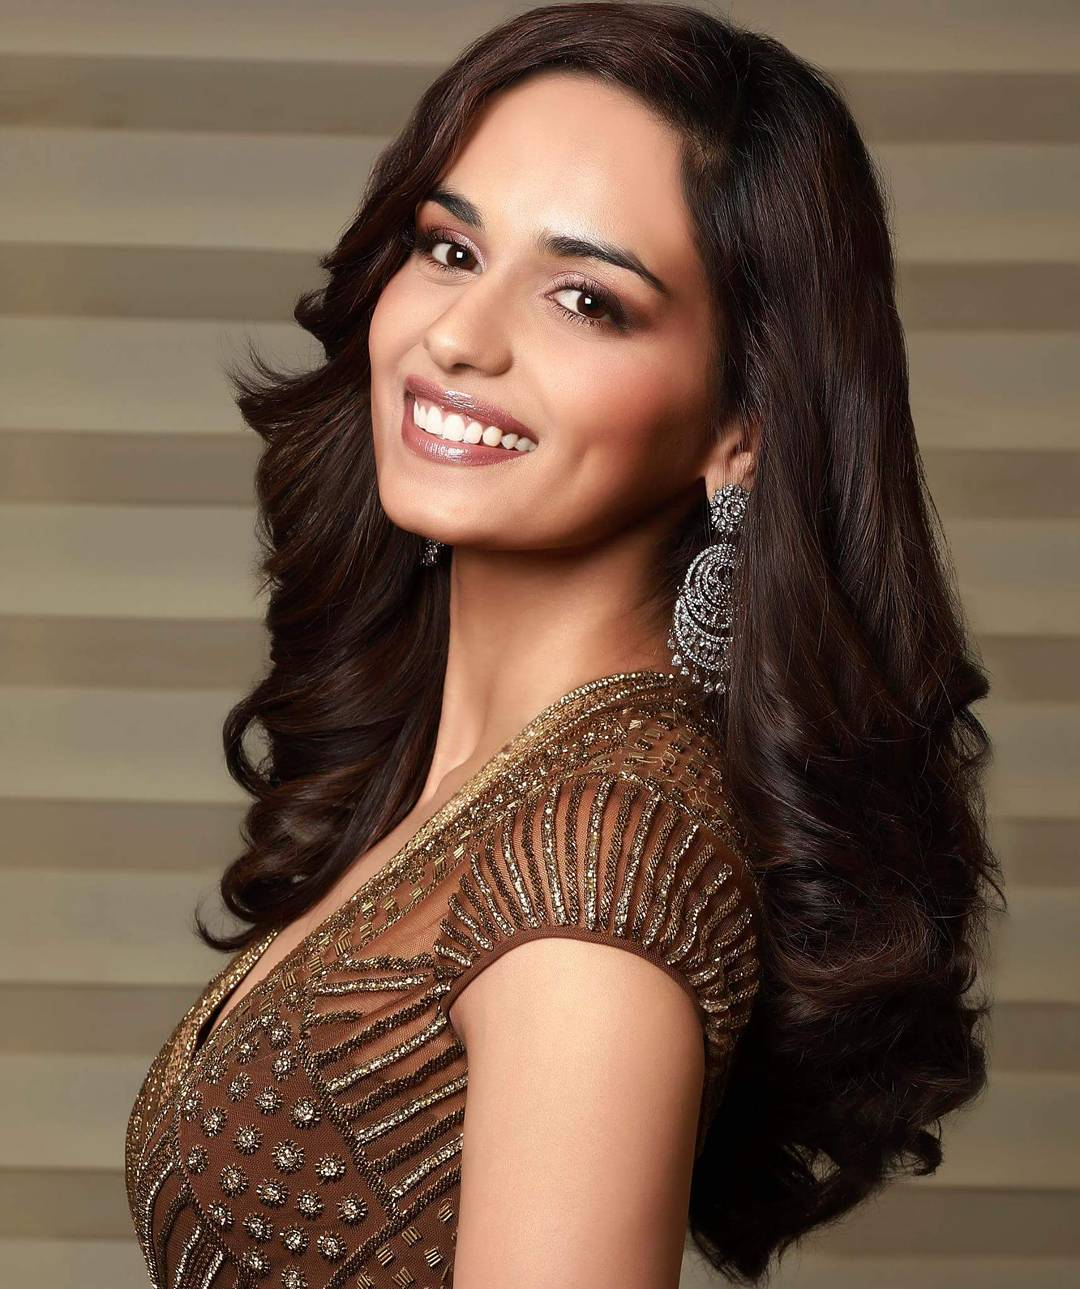 Indian Beauty: The Most Beautiful Indian Girls